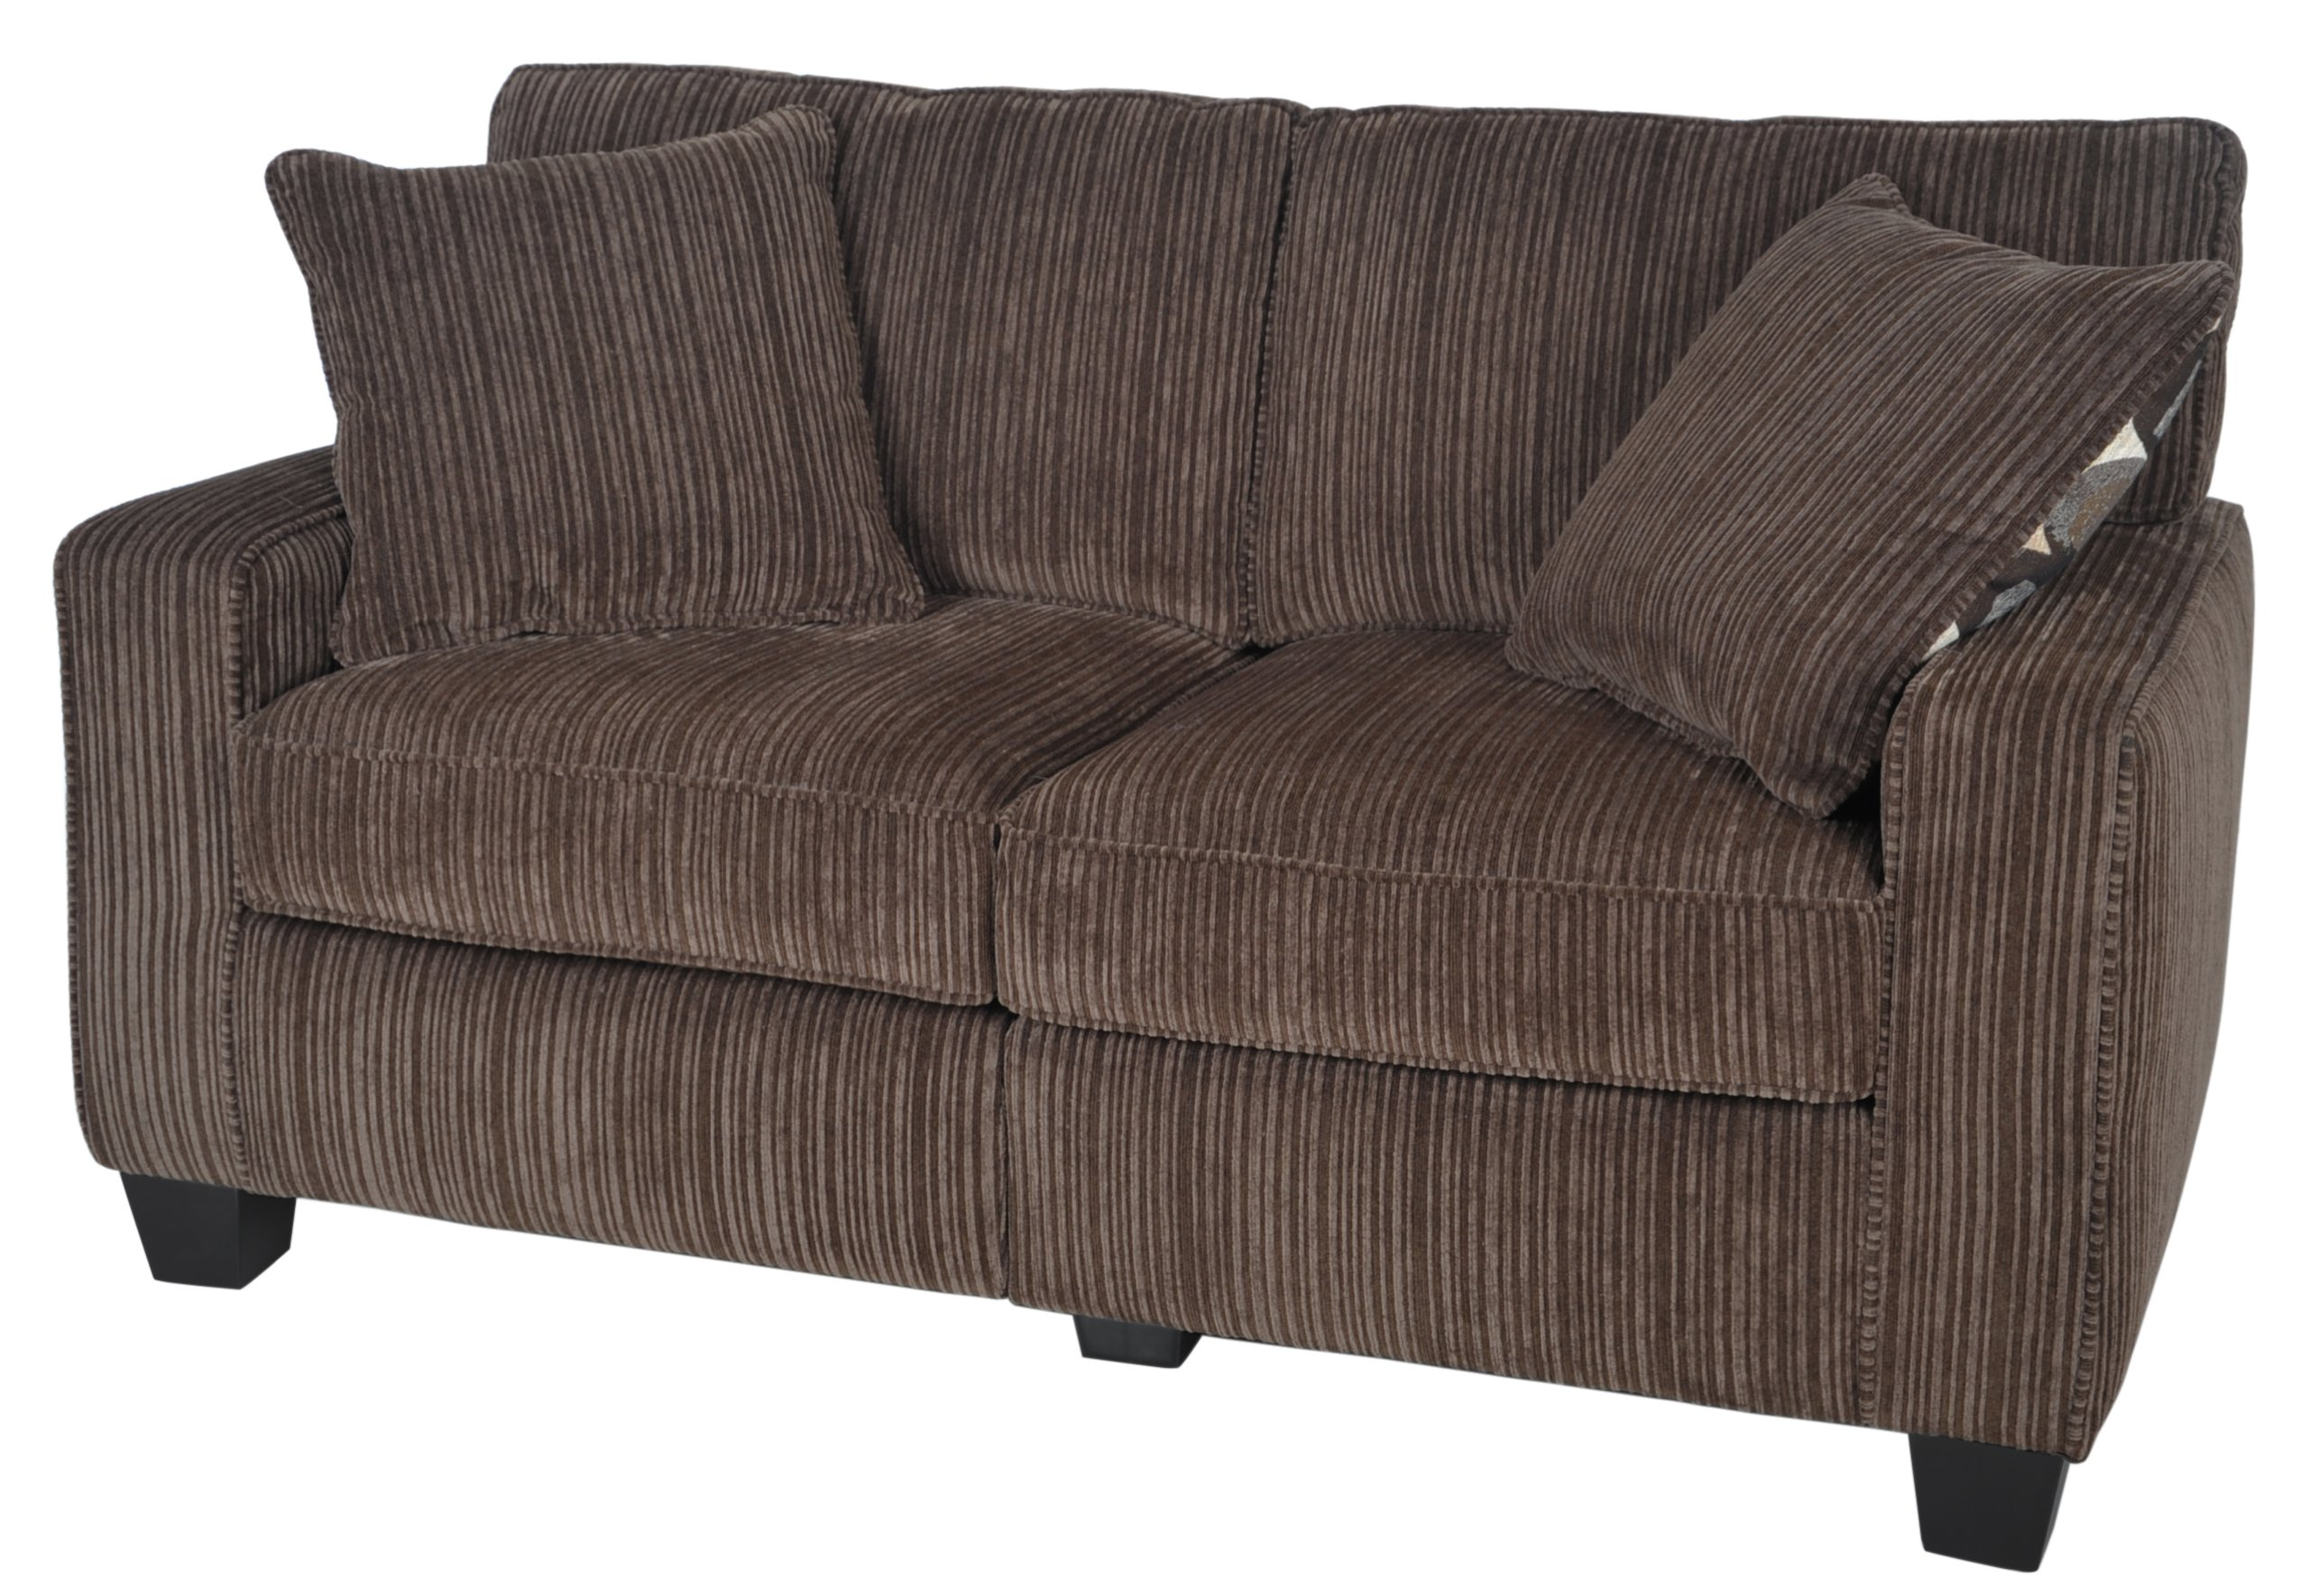 Serta RTA Palisades Collection 61'' Loveseat in Riverfront Brown by Serta (Image #2)